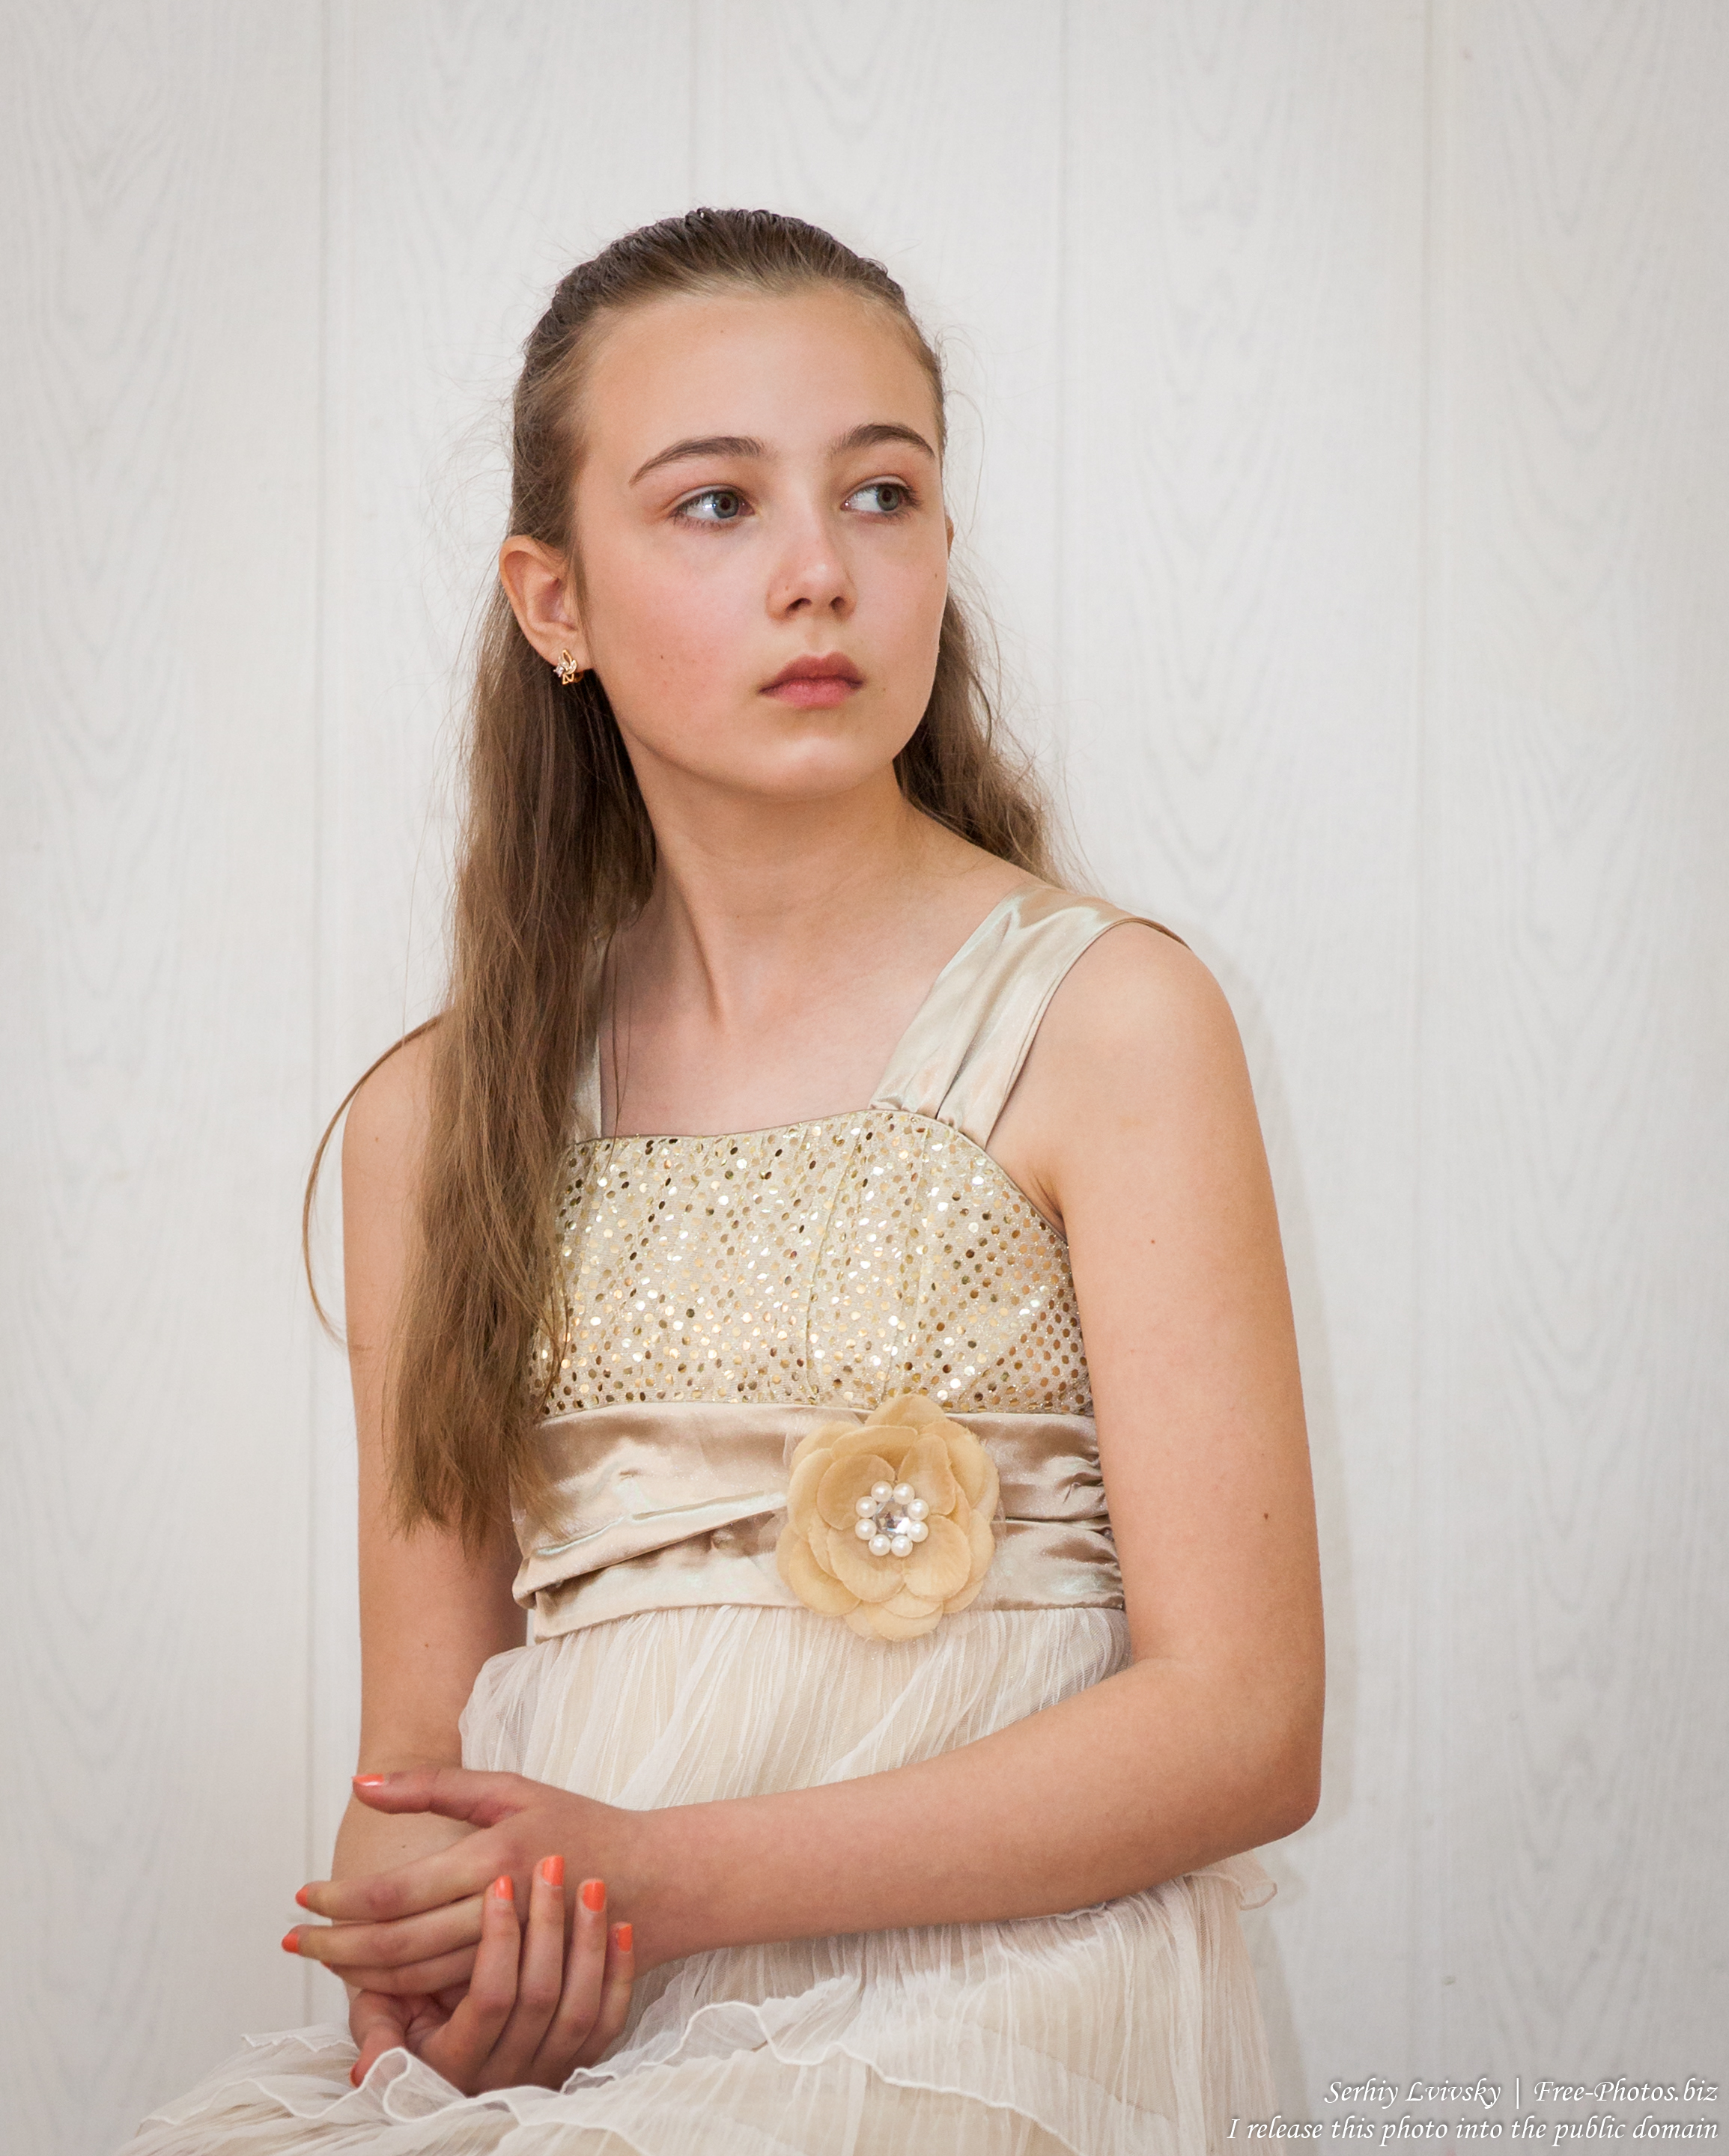 a beautiful schoolgirl wearing a dress photographed in June 2015, picture 1